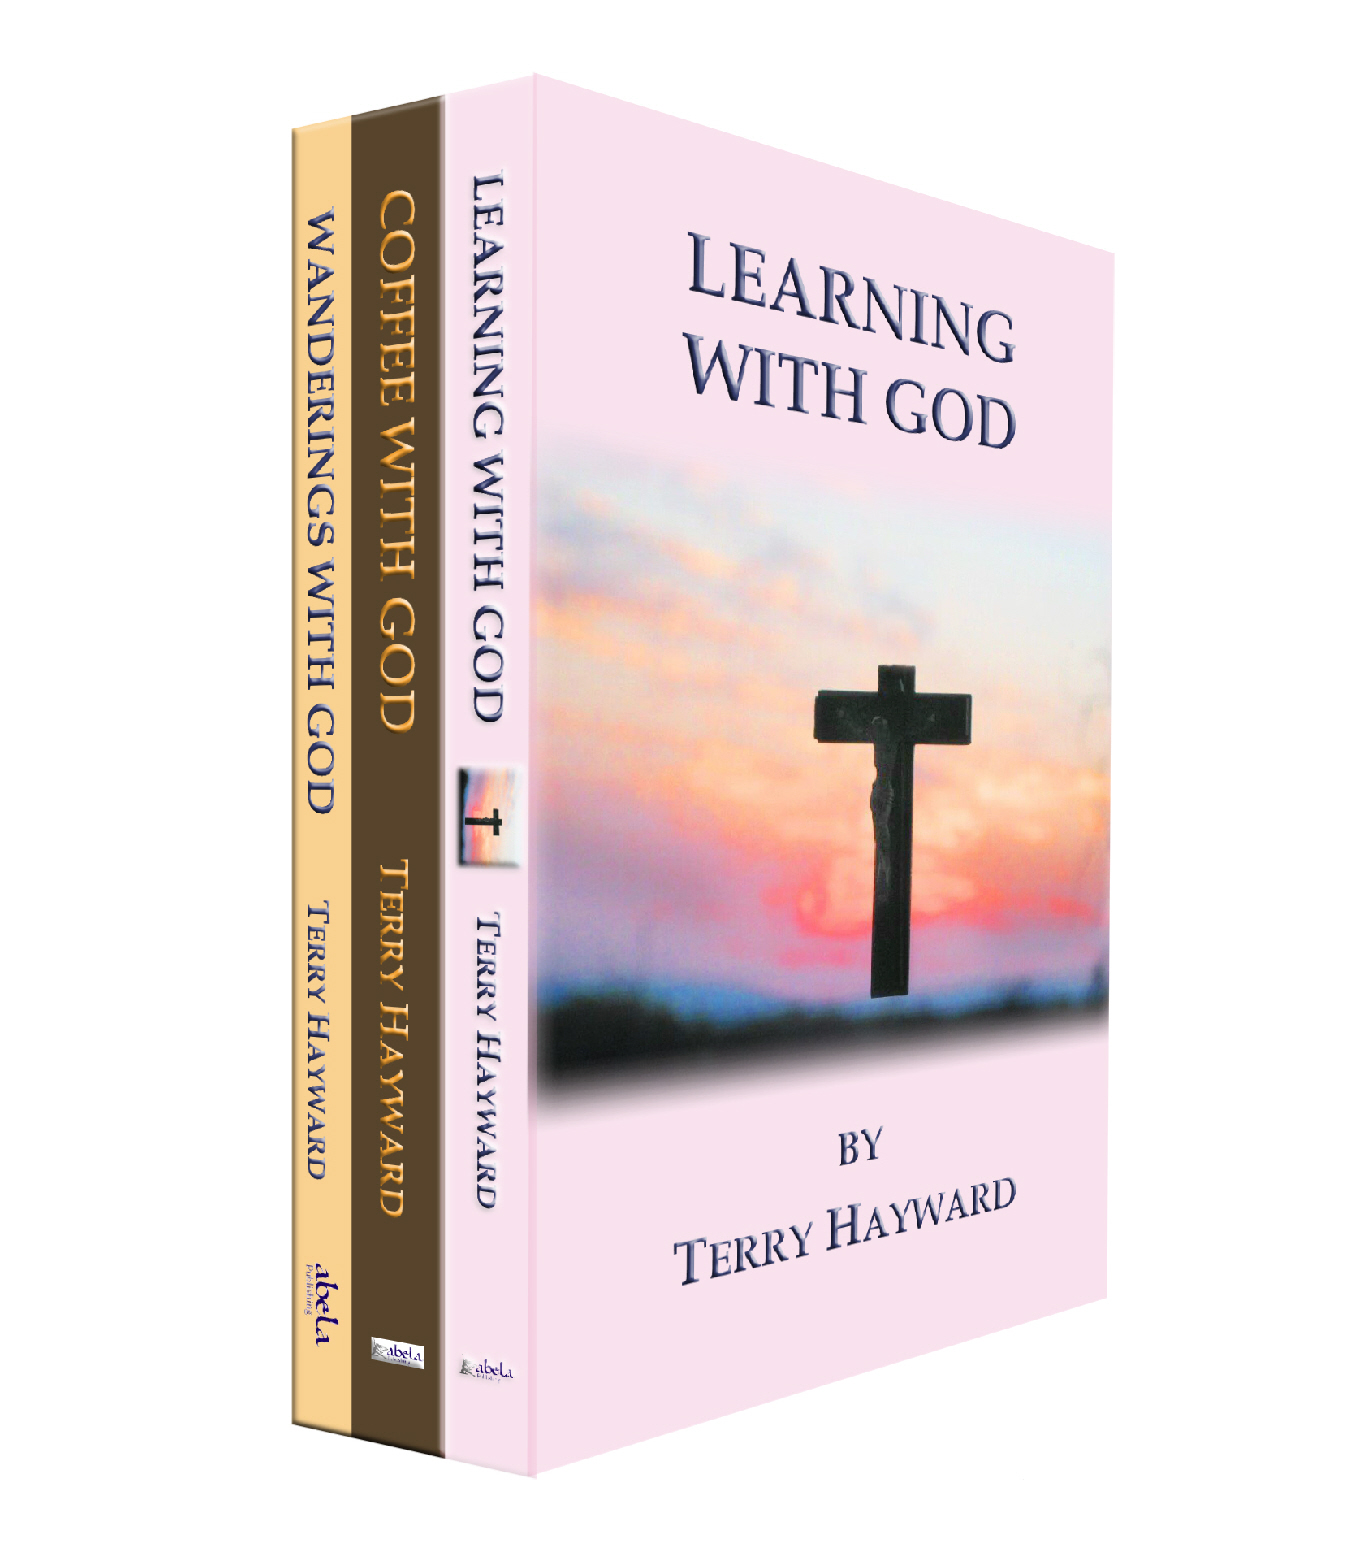 JOURNEYS WITH GOD - 3 Bookset with a 4th book FREE